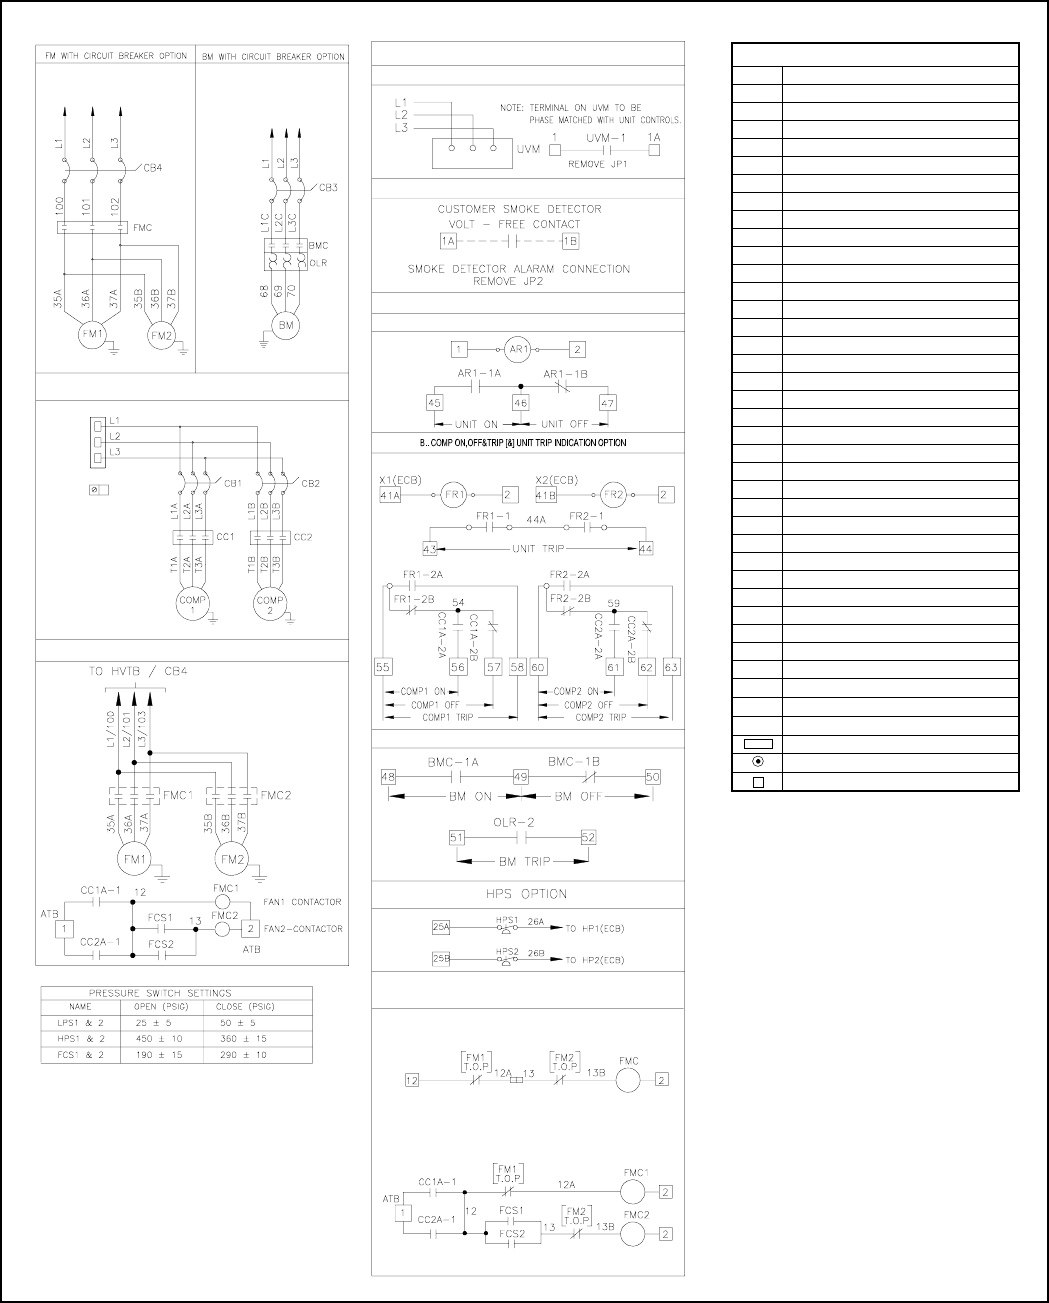 11080817 further Westinghouse Oven Element Wiring Diagram as well Kenmore Stackable Dryer Wiring Diagram in addition 3 Wire Wiring Diagram Maytag Oven additionally Refrigerator Repair Help. on haier oven wiring diagram